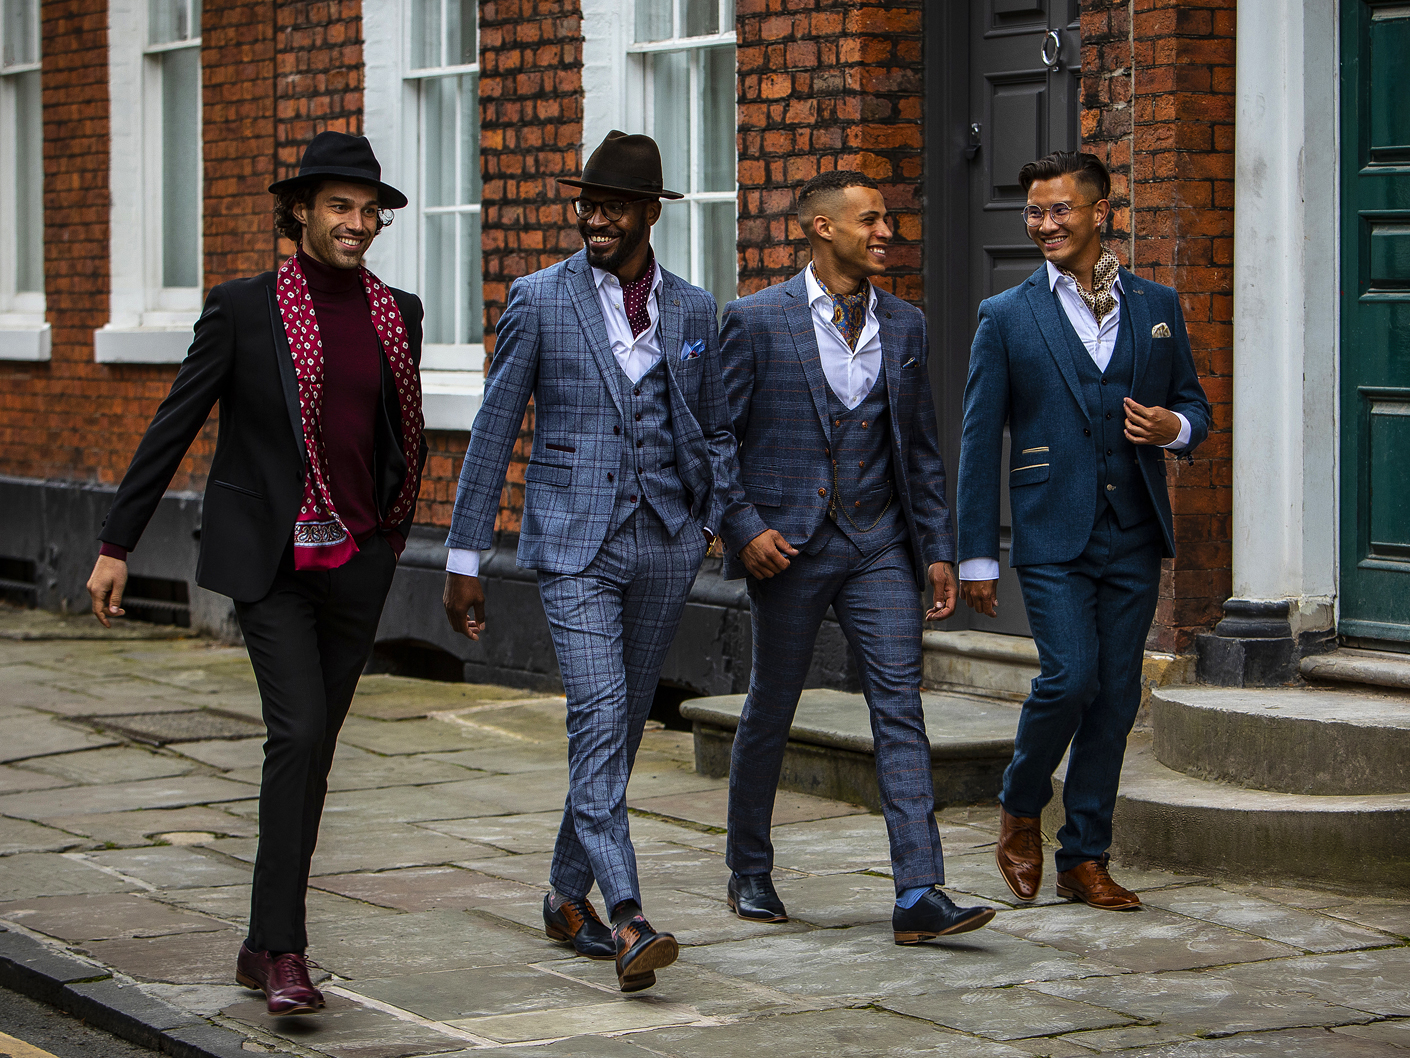 mens-clothing-photography-manchester